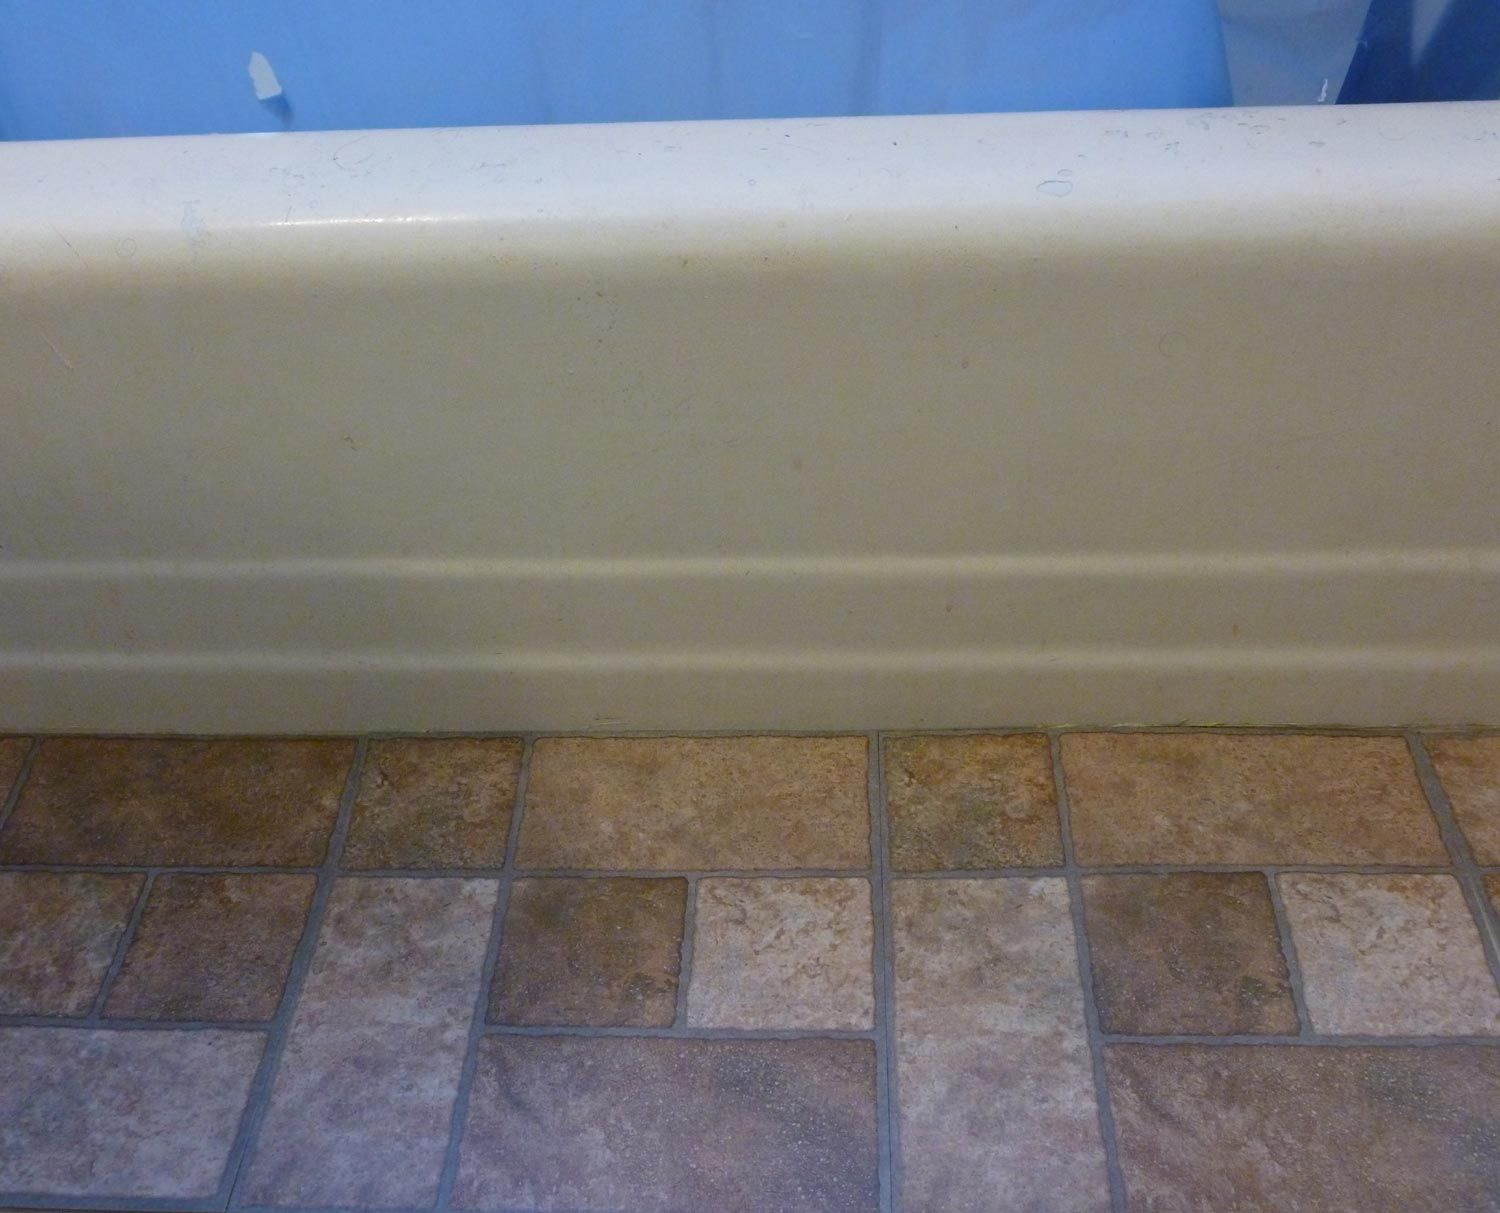 Tile a bathroom floor - Here S How To Transform Your Bathroom With Self Adhesive Floor Tiles